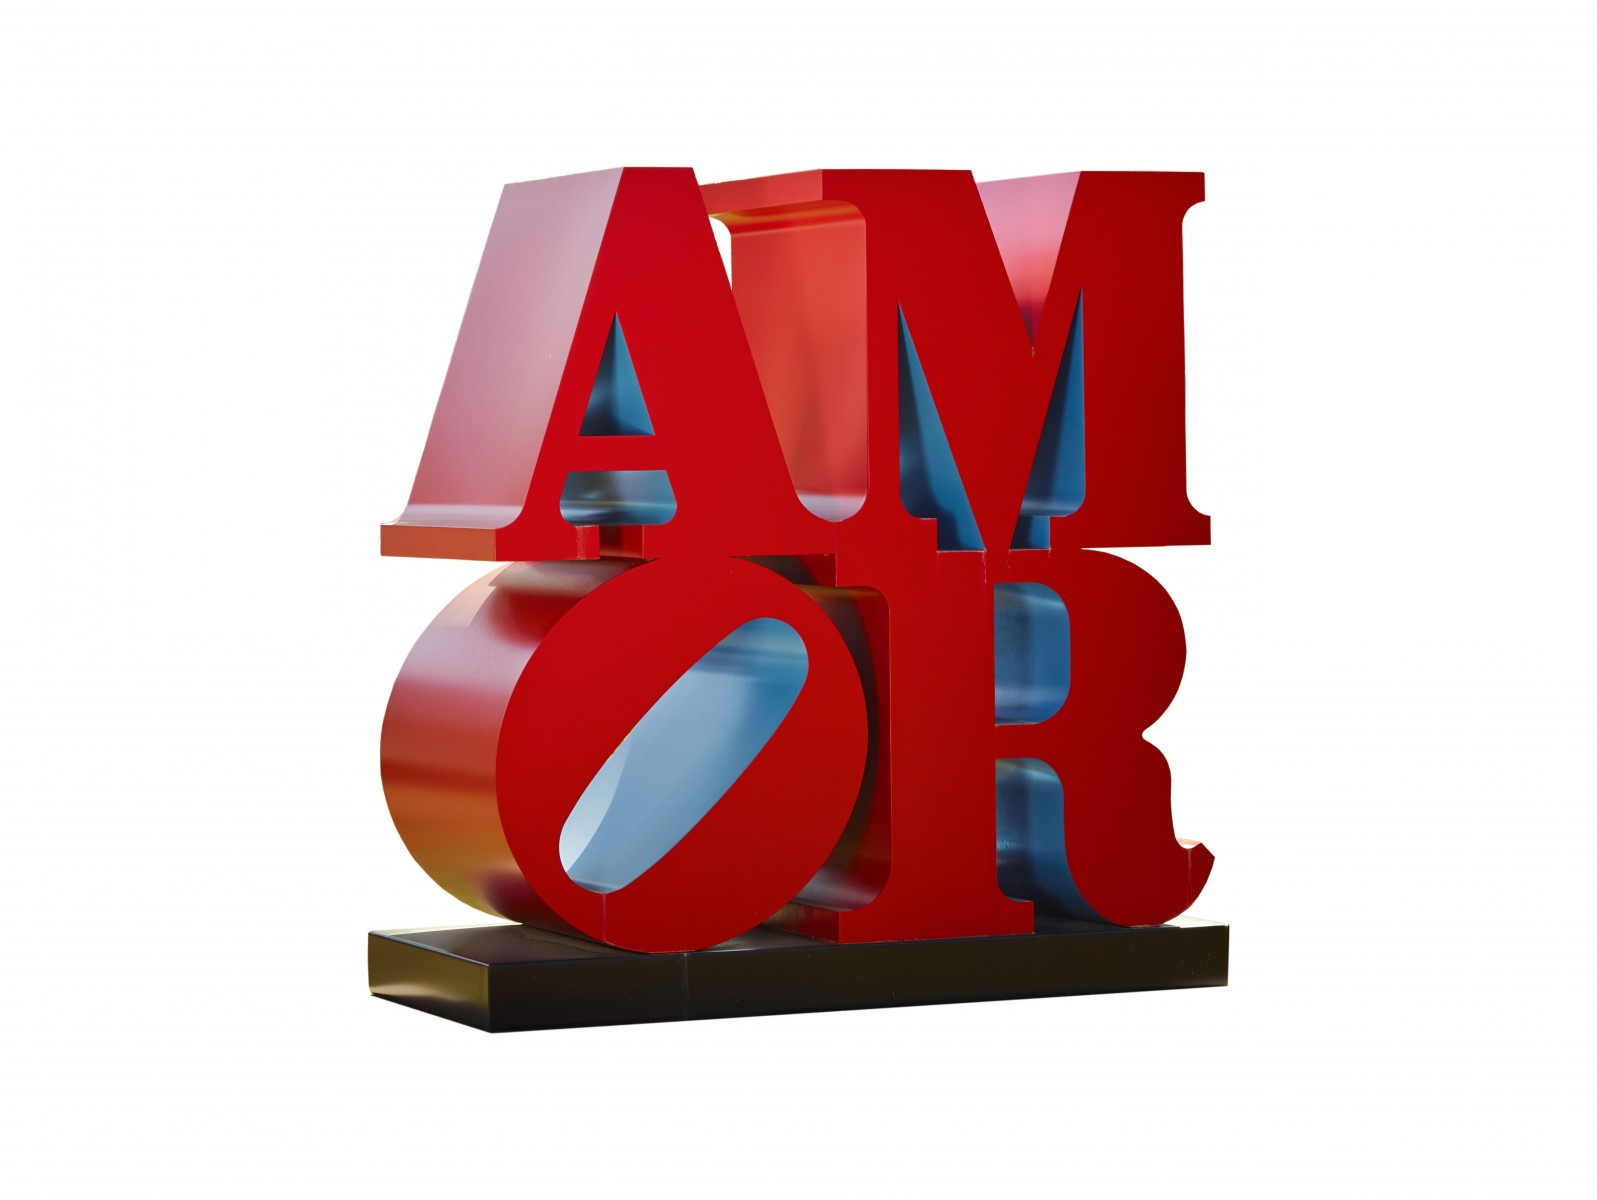 AMOR, Robert Indiana, 1998, Painted Aluminum, 6 feet × 6 feet × 36 inches, Base: 6 feet × 6 feet 2 inches × 38 inches, Collection of Morgan Art Foundation, Courtesy Simon and Marc Salama-Caro, Red Blue, Edition 2/5, ©Morgan Art Foundation/Artists Rights Society (ARS) New York